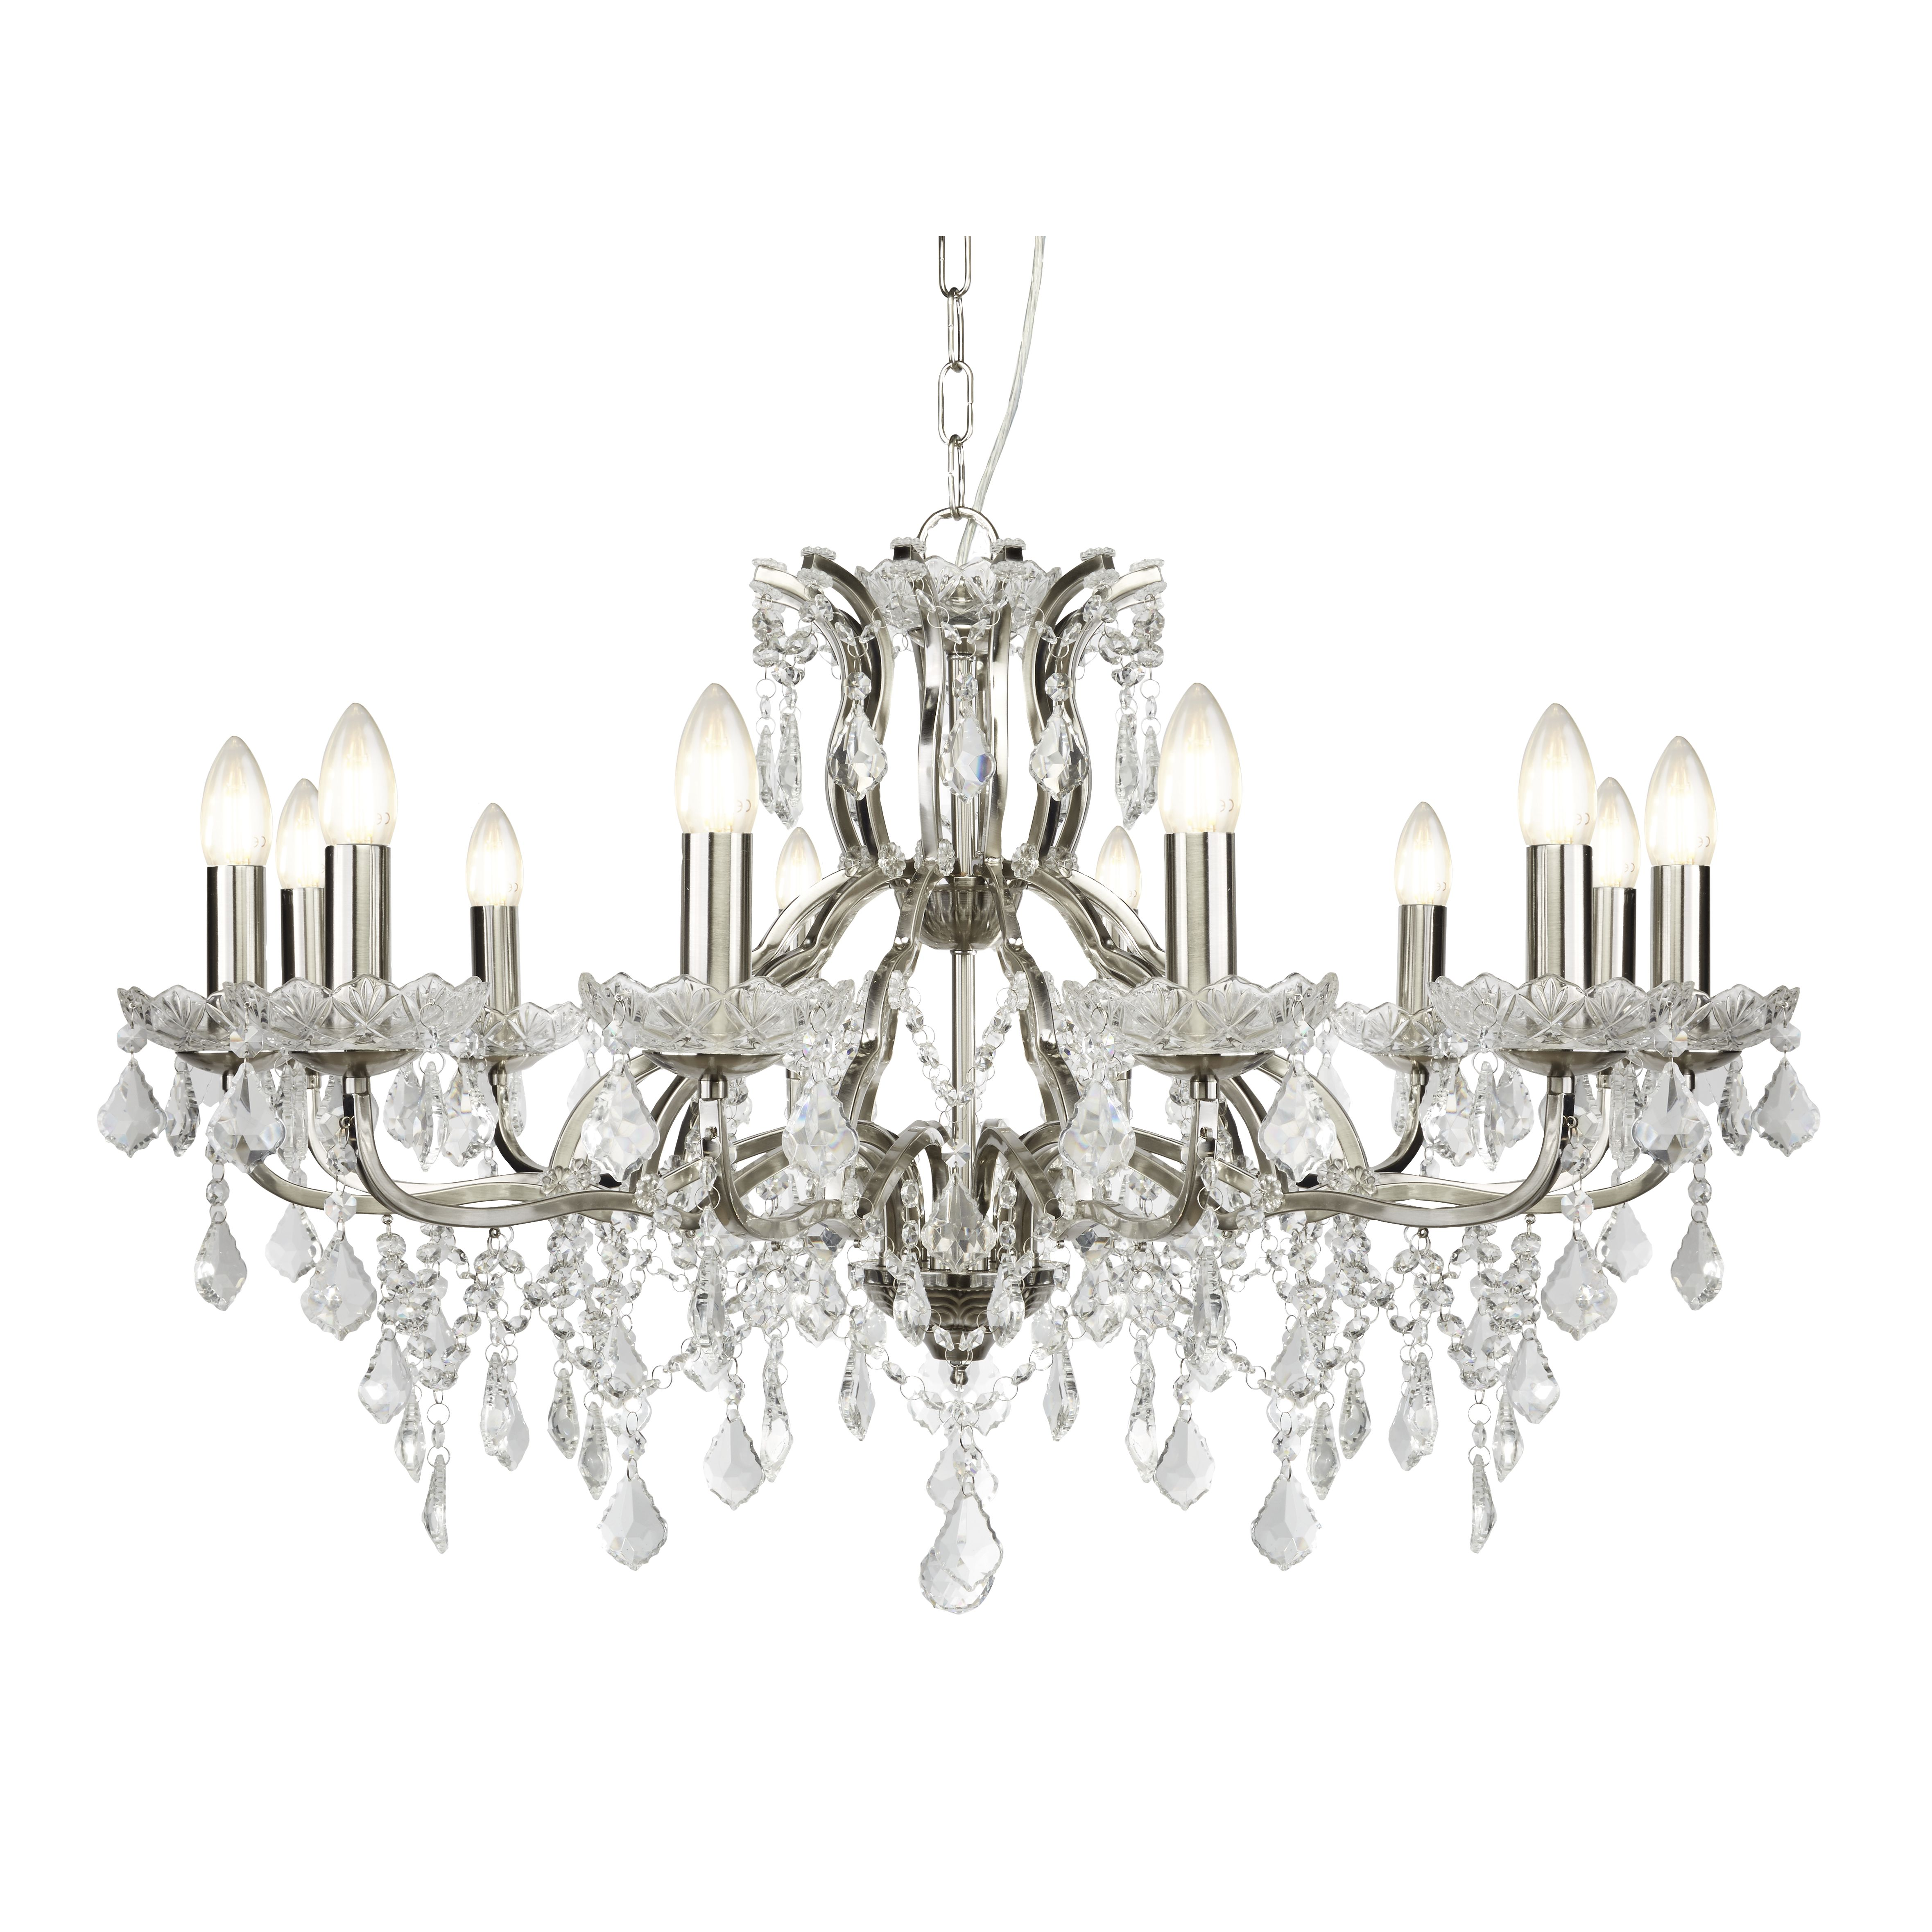 12 Light Chandelier Clear Crystal Drops Amp Trim Satin Silver